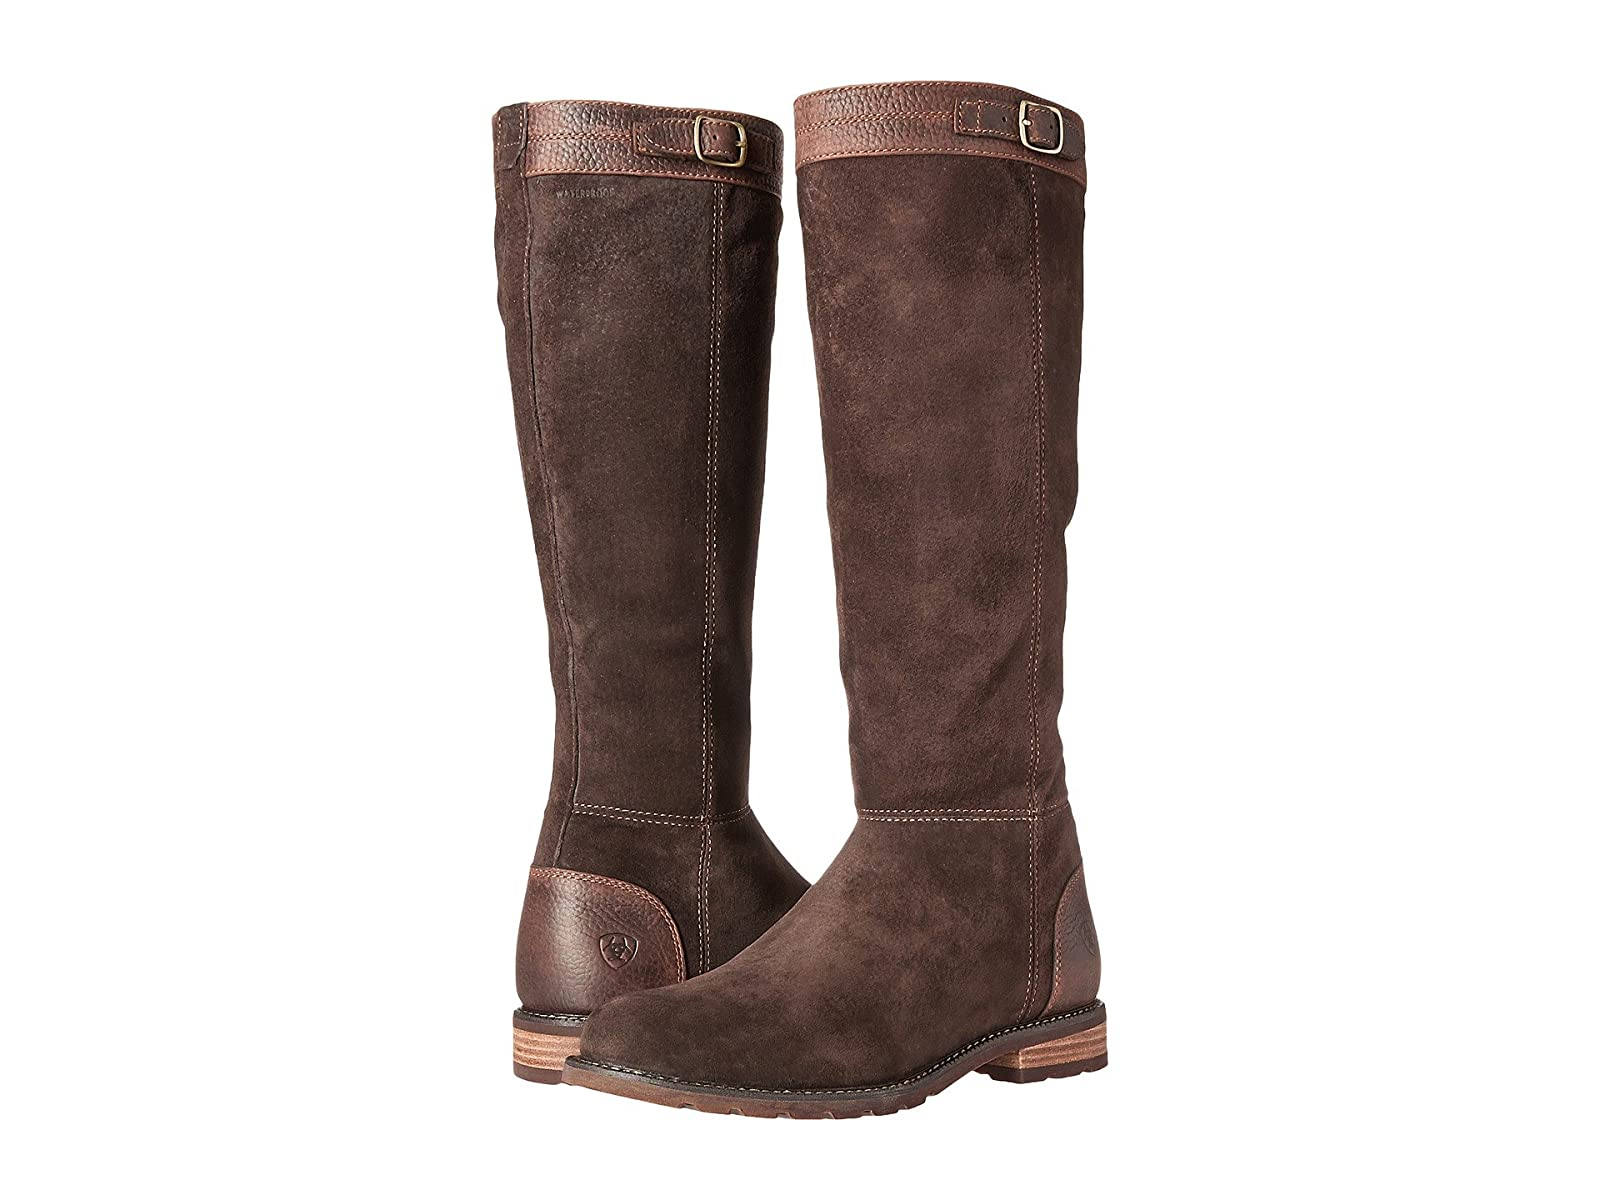 Ariat Creswell H2OCheap and distinctive eye-catching shoes